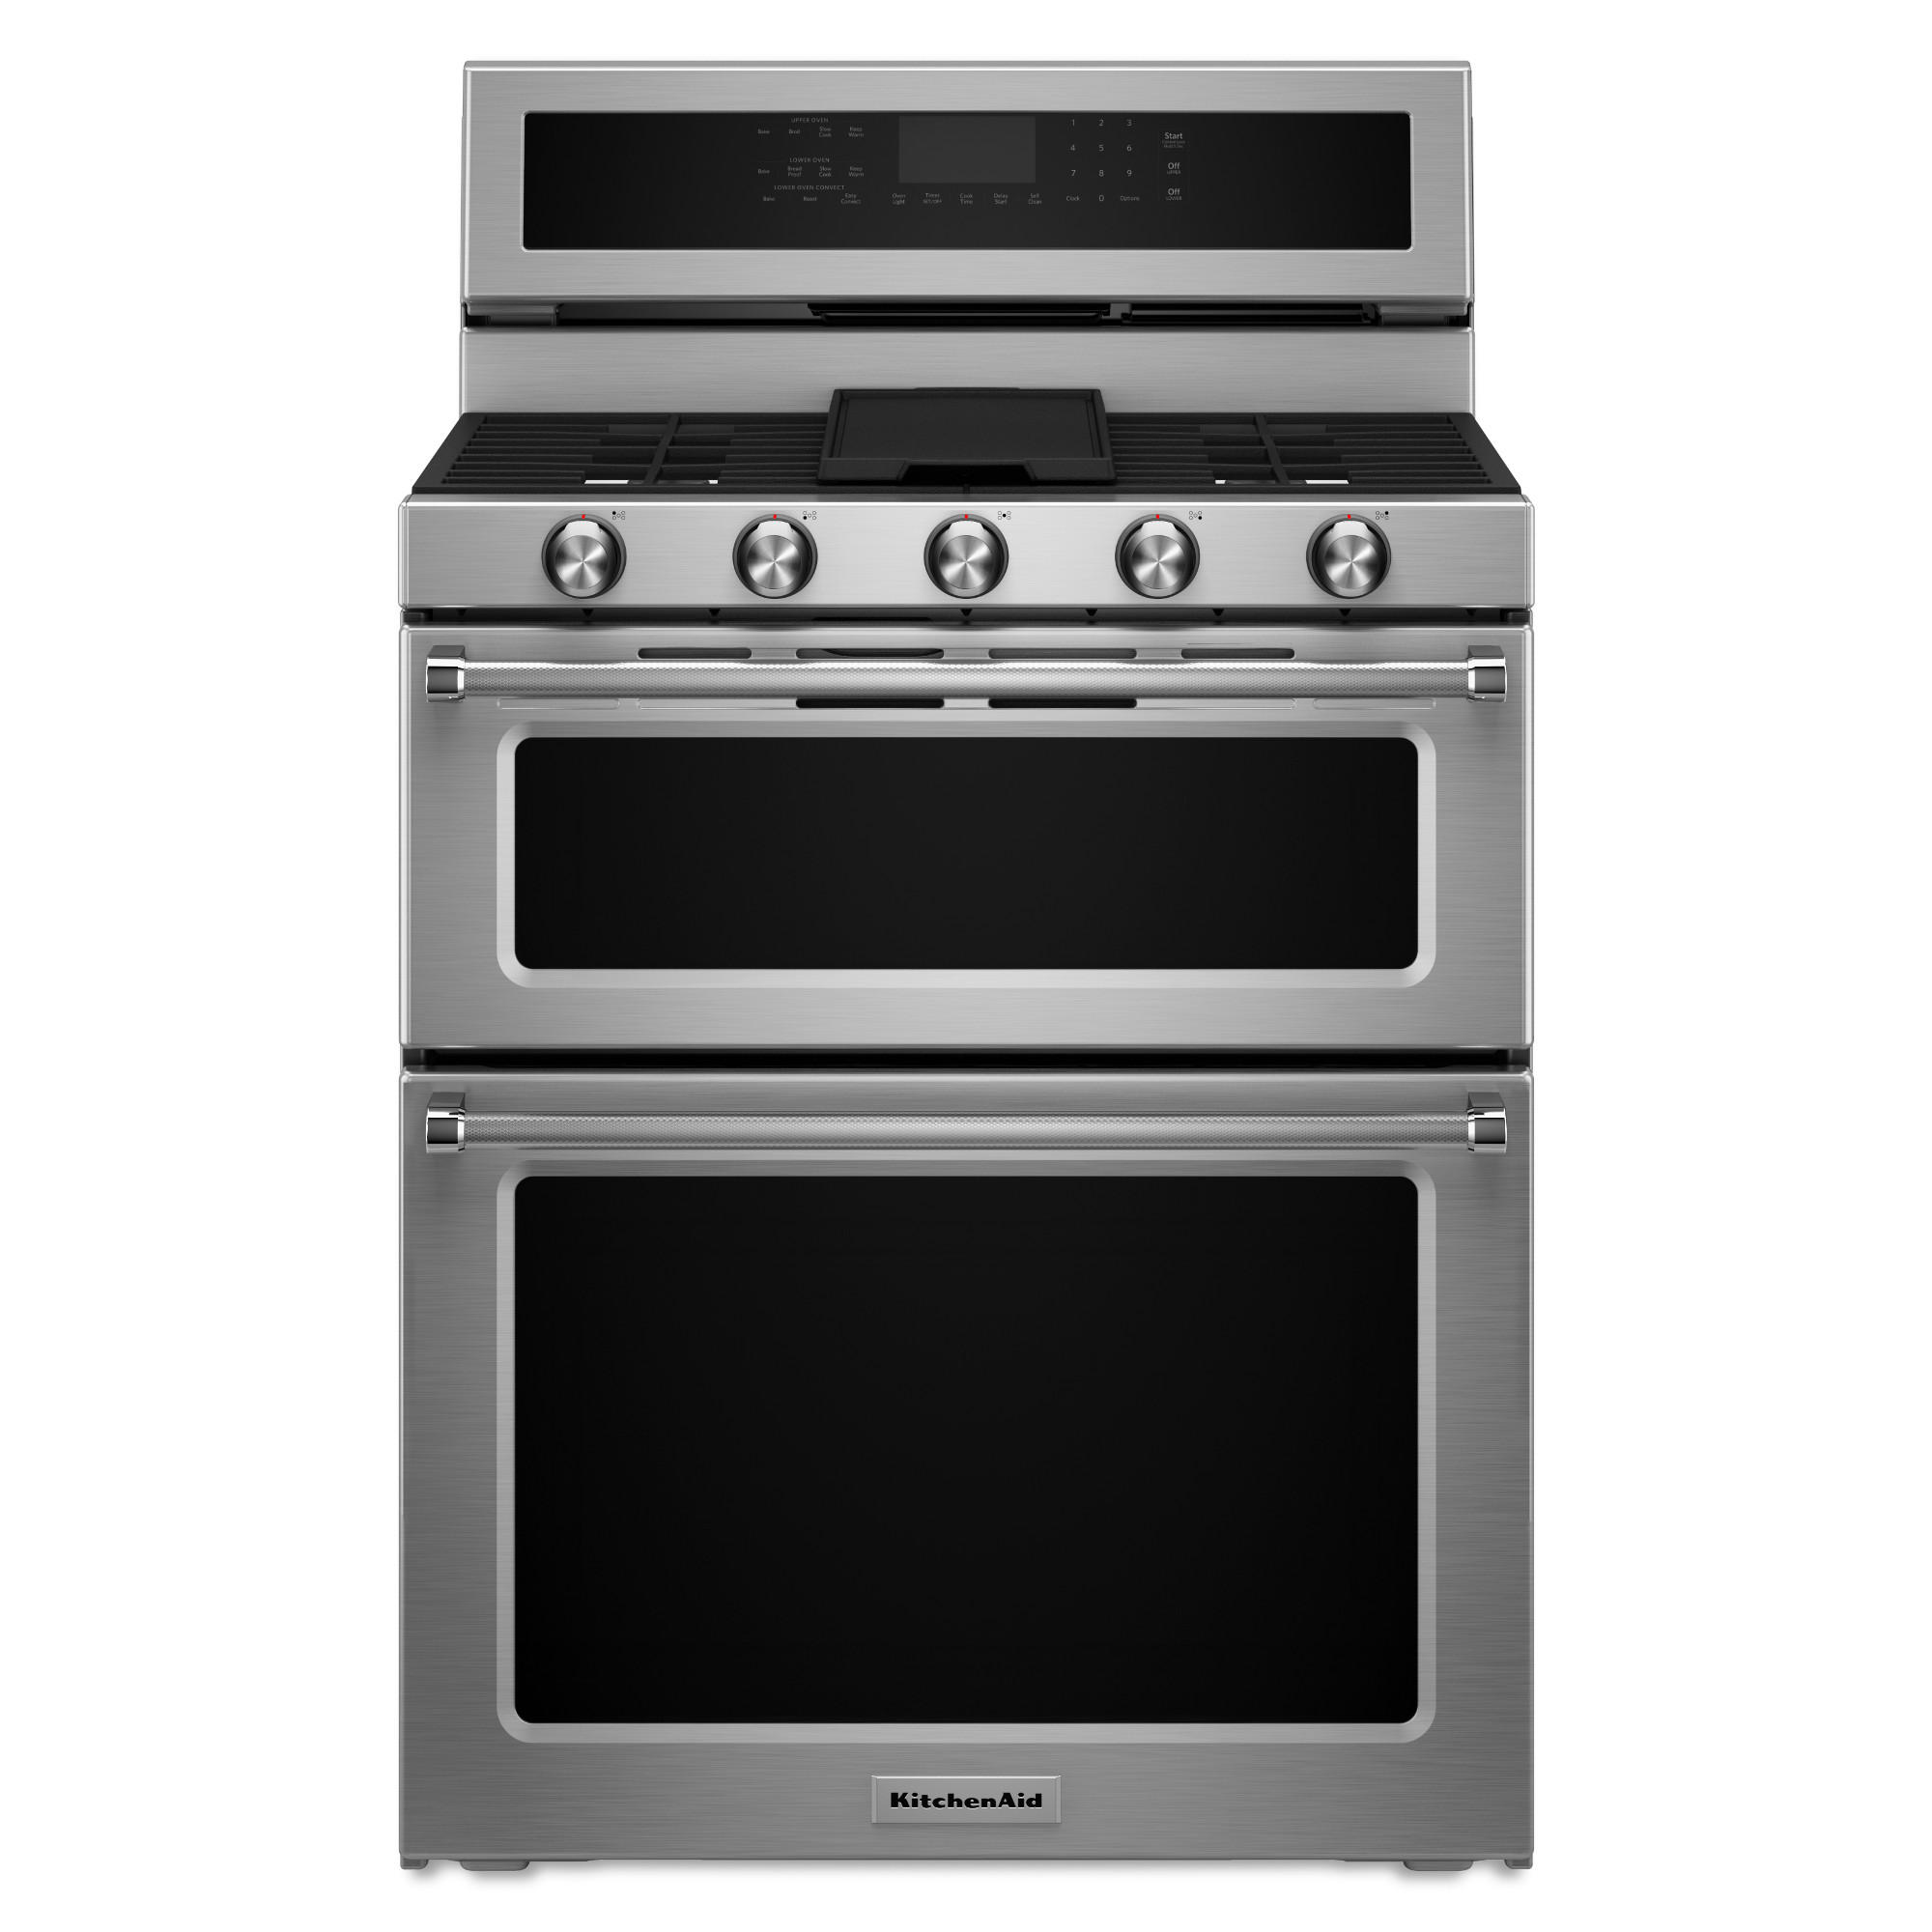 KitchenAid KFDD500ESS 6.7 cu.ft. Dual Fuel Double Oven Range - Stainless Steel